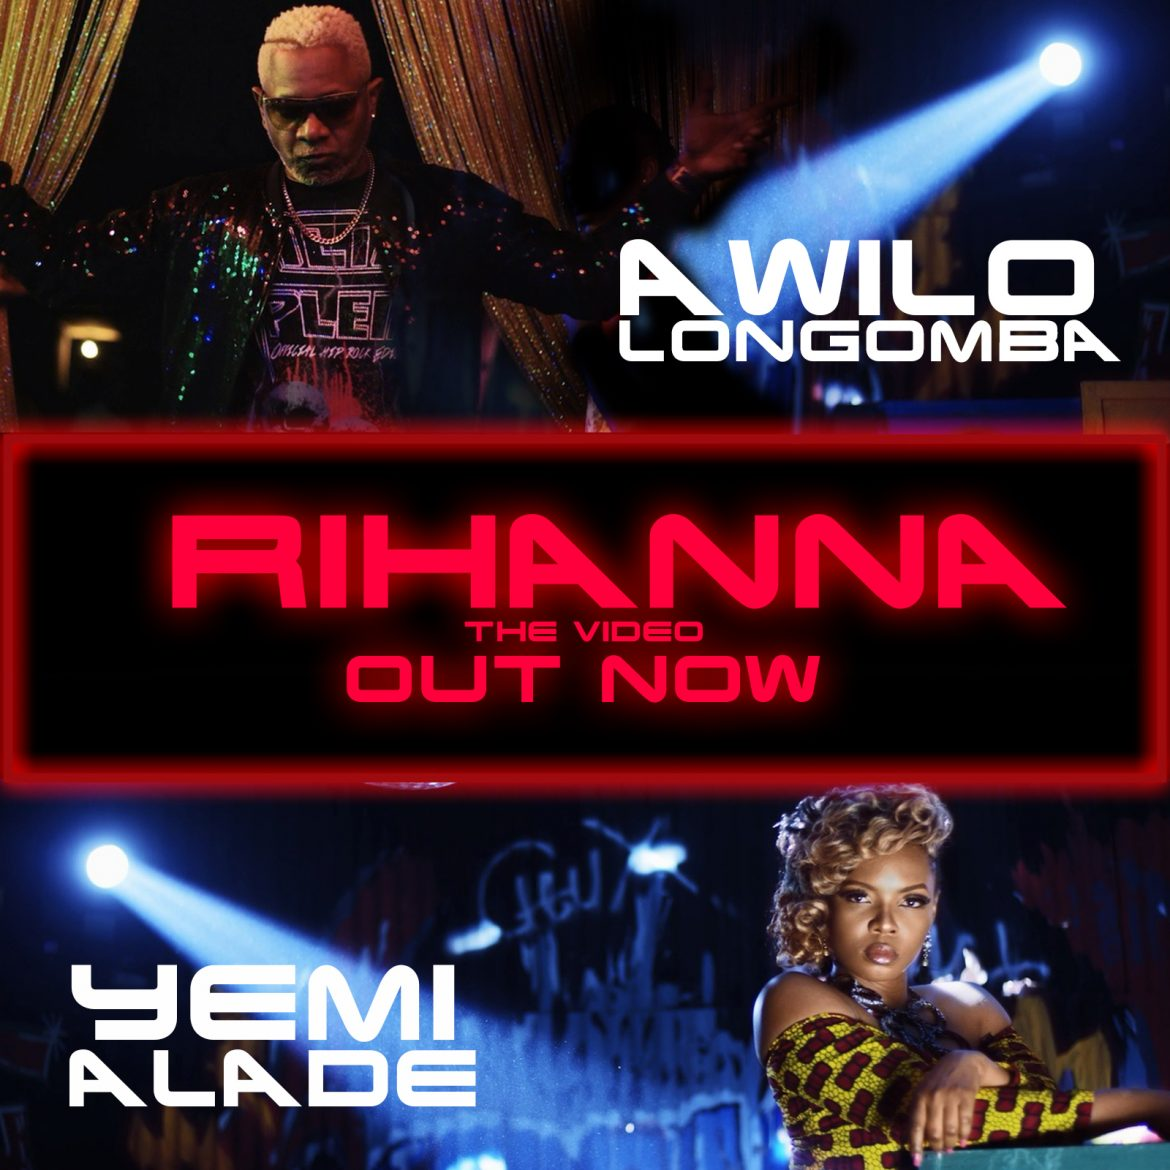 """AWILO LONGOMBA - """"RIHANNA"""" FEATURING YEMI ALADE (DIRECTED BY CLARENCE PETERS)"""